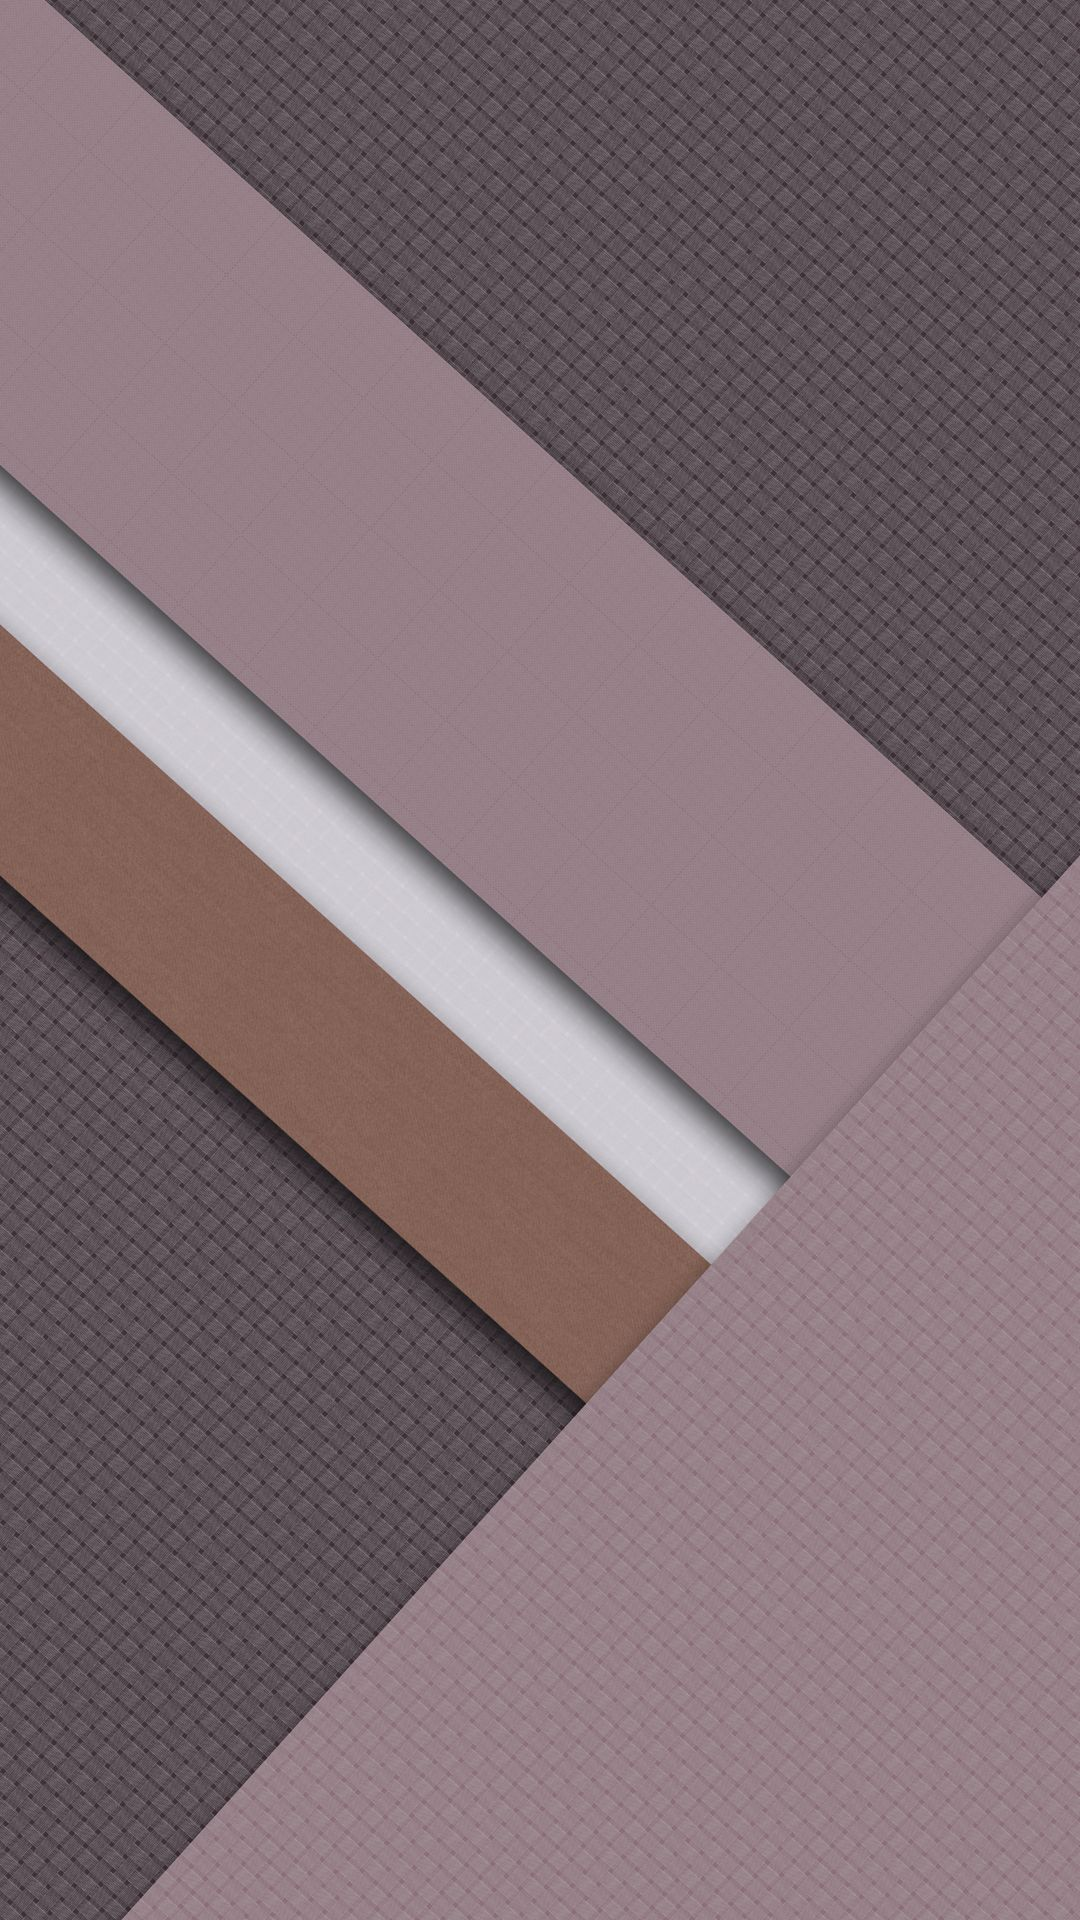 Material Design Mobile HD Wallpaper12   Vactual Papers With 1080x1920